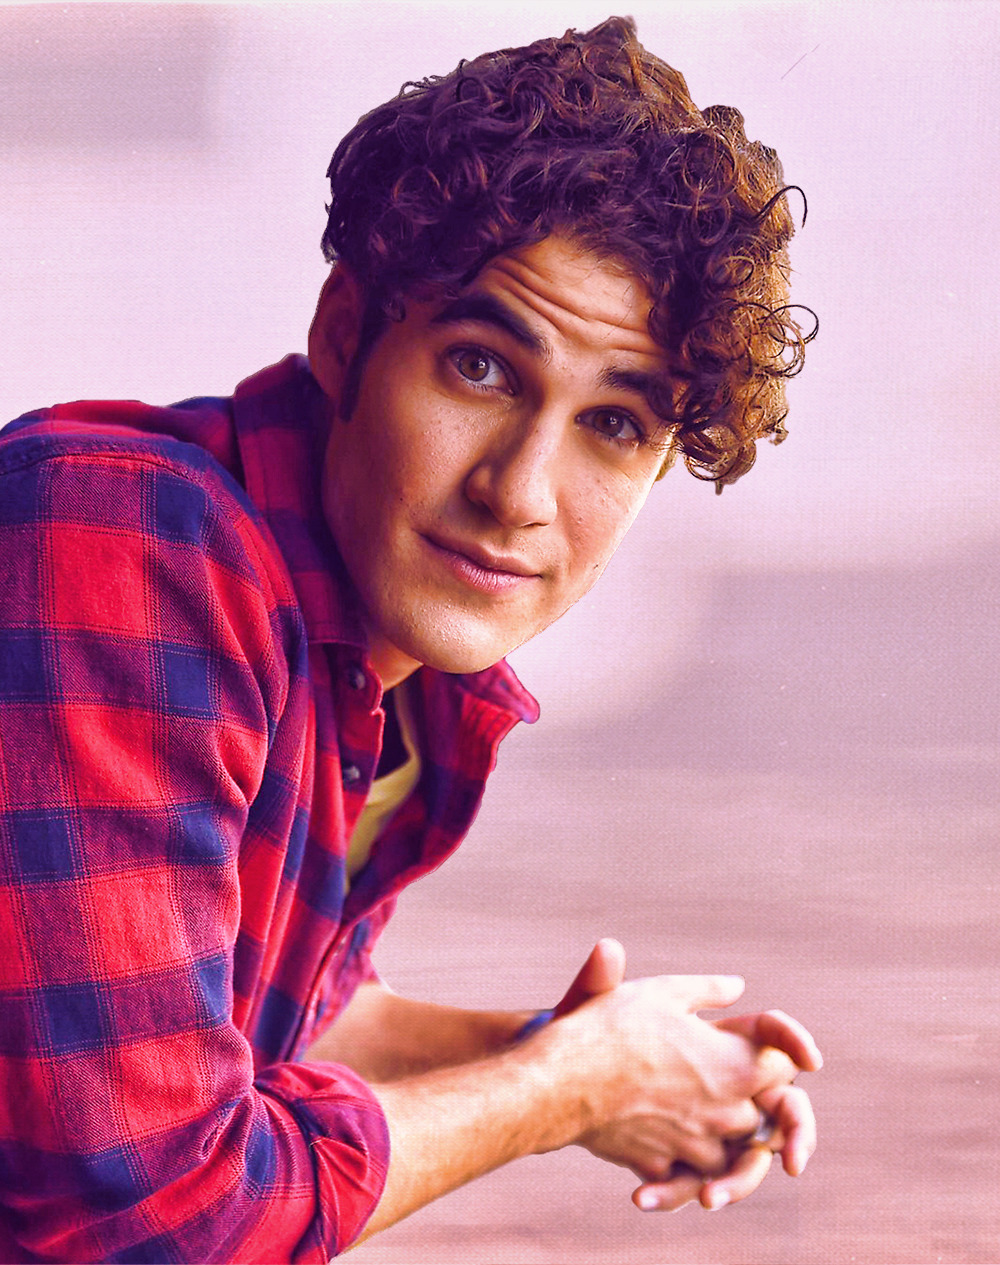 darrencriss - Photos/Gifs of Darren in 2016 - Page 2 Tumblr_ocomm1ewiL1ryqbuso1_1280